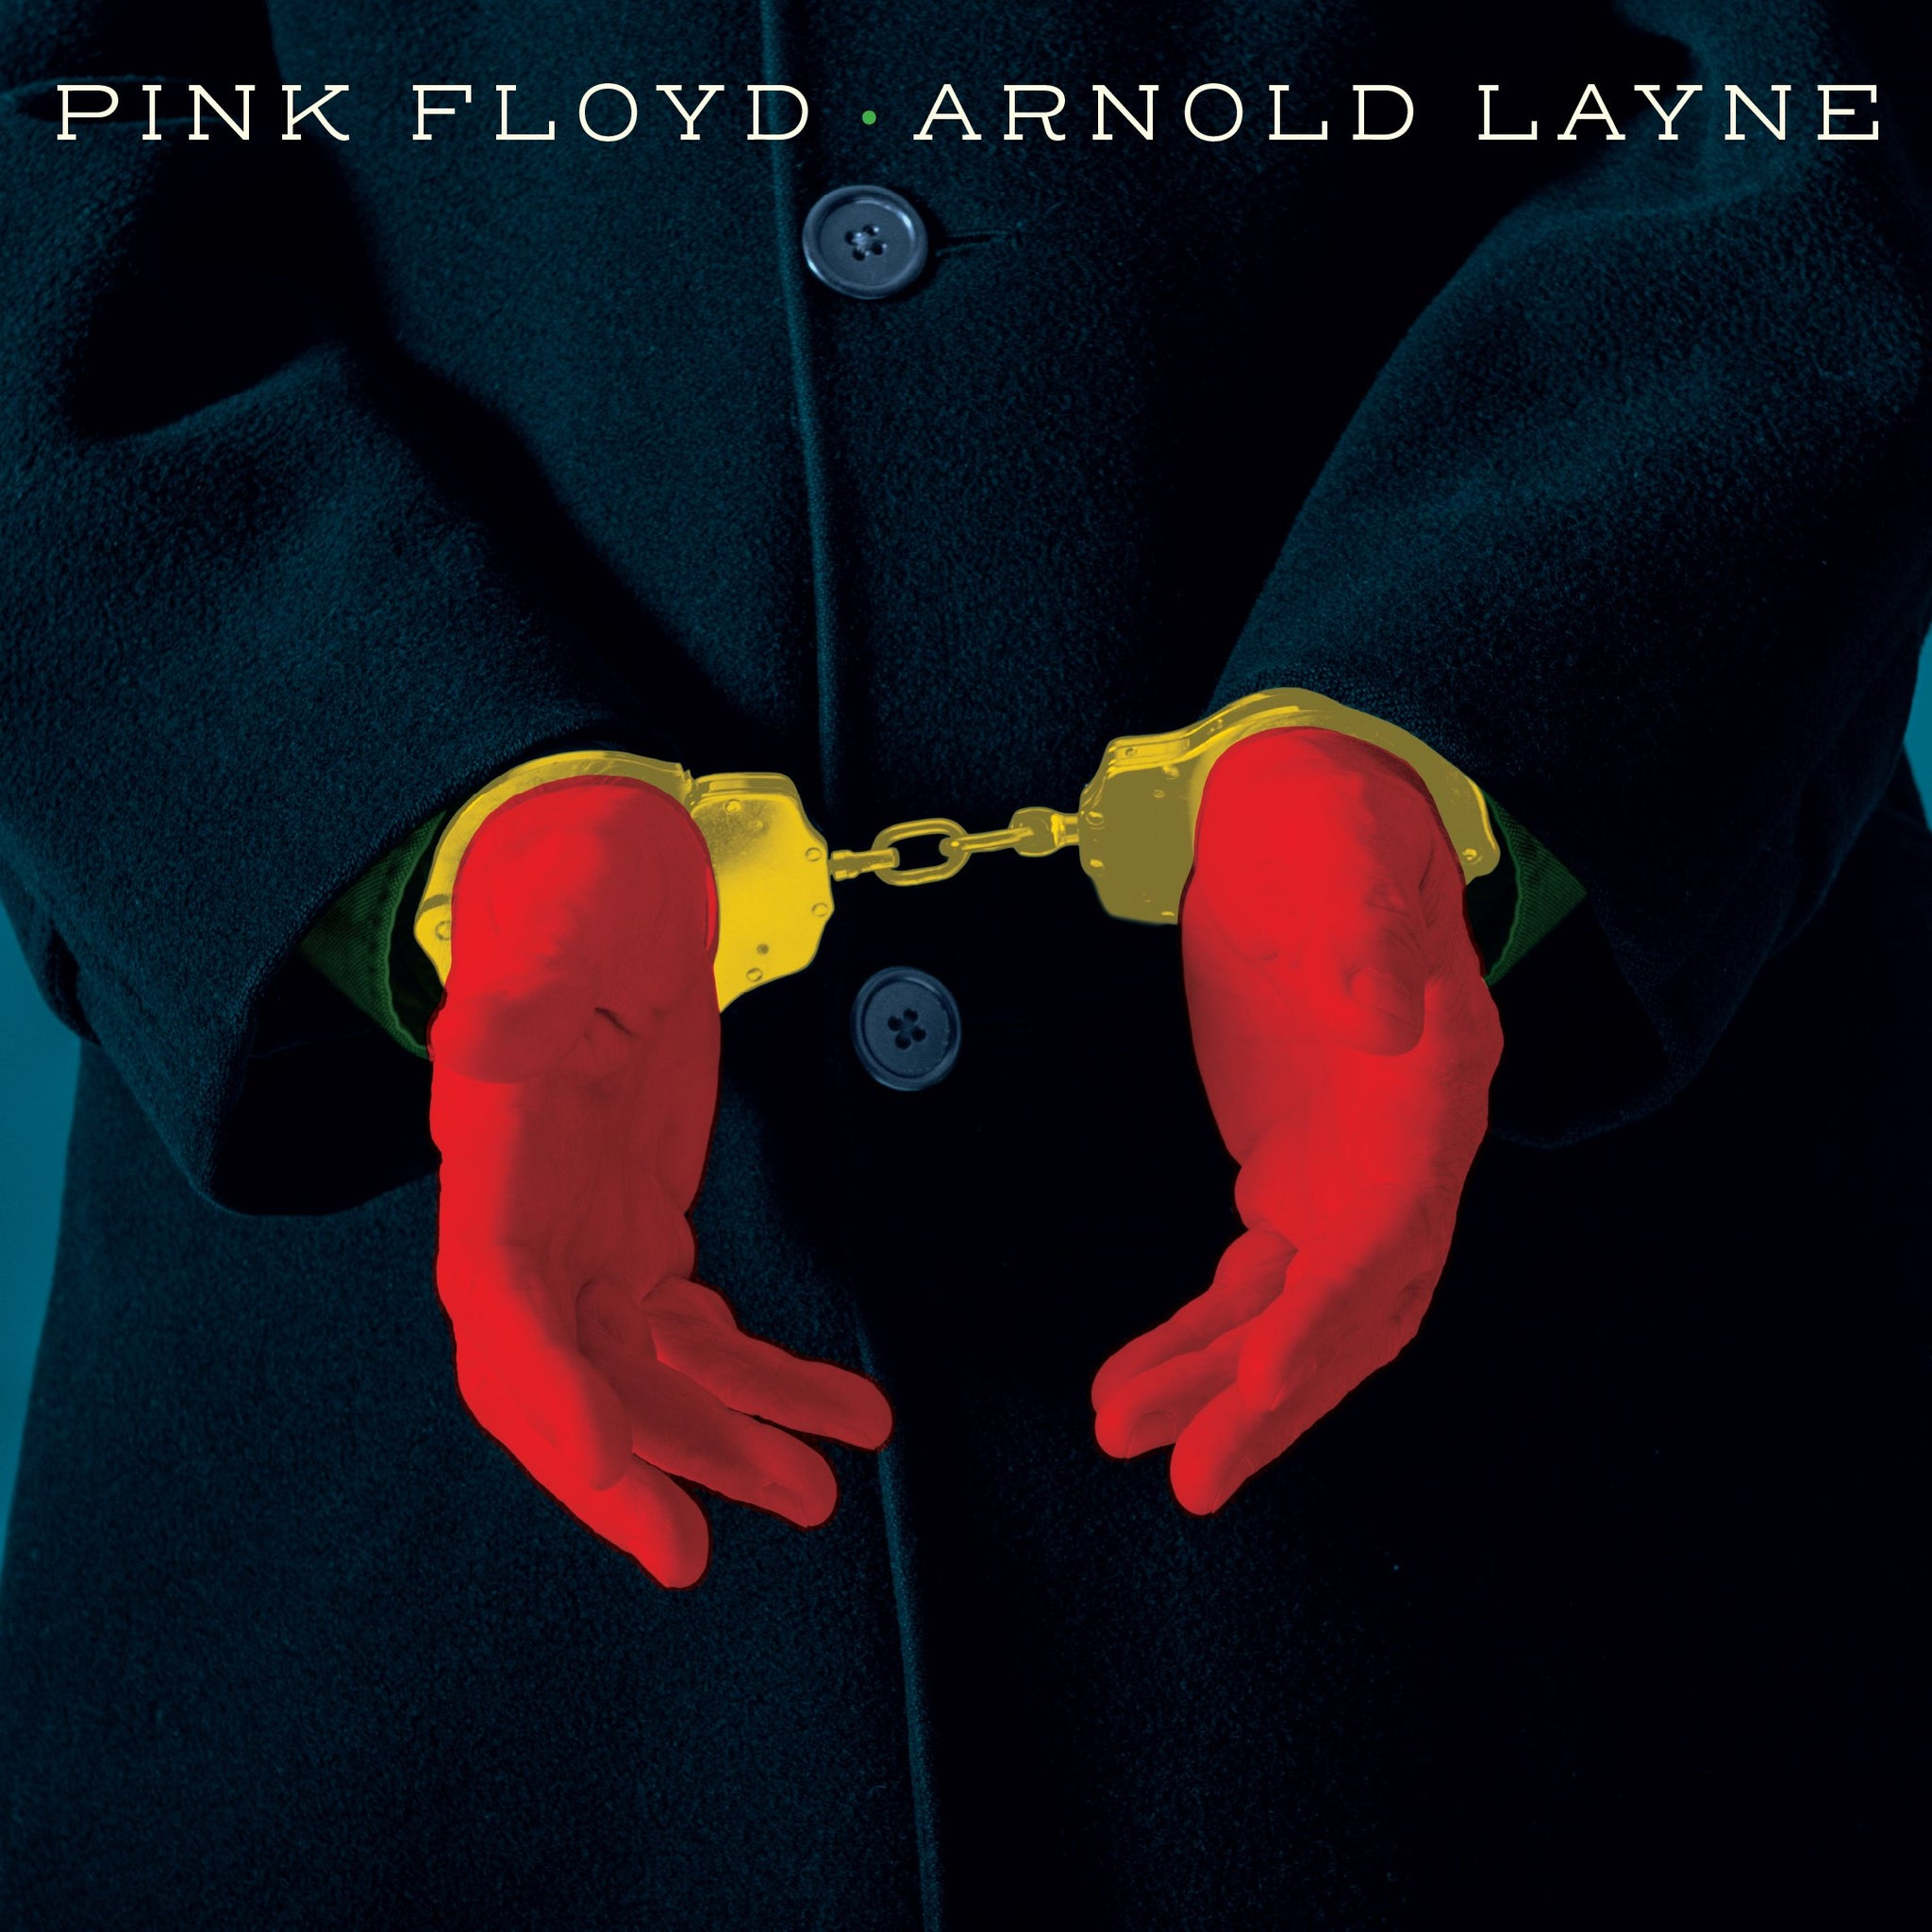 Pink Floyd - Arnold Layne (Live at Syd Barrett Tribute, 2007)